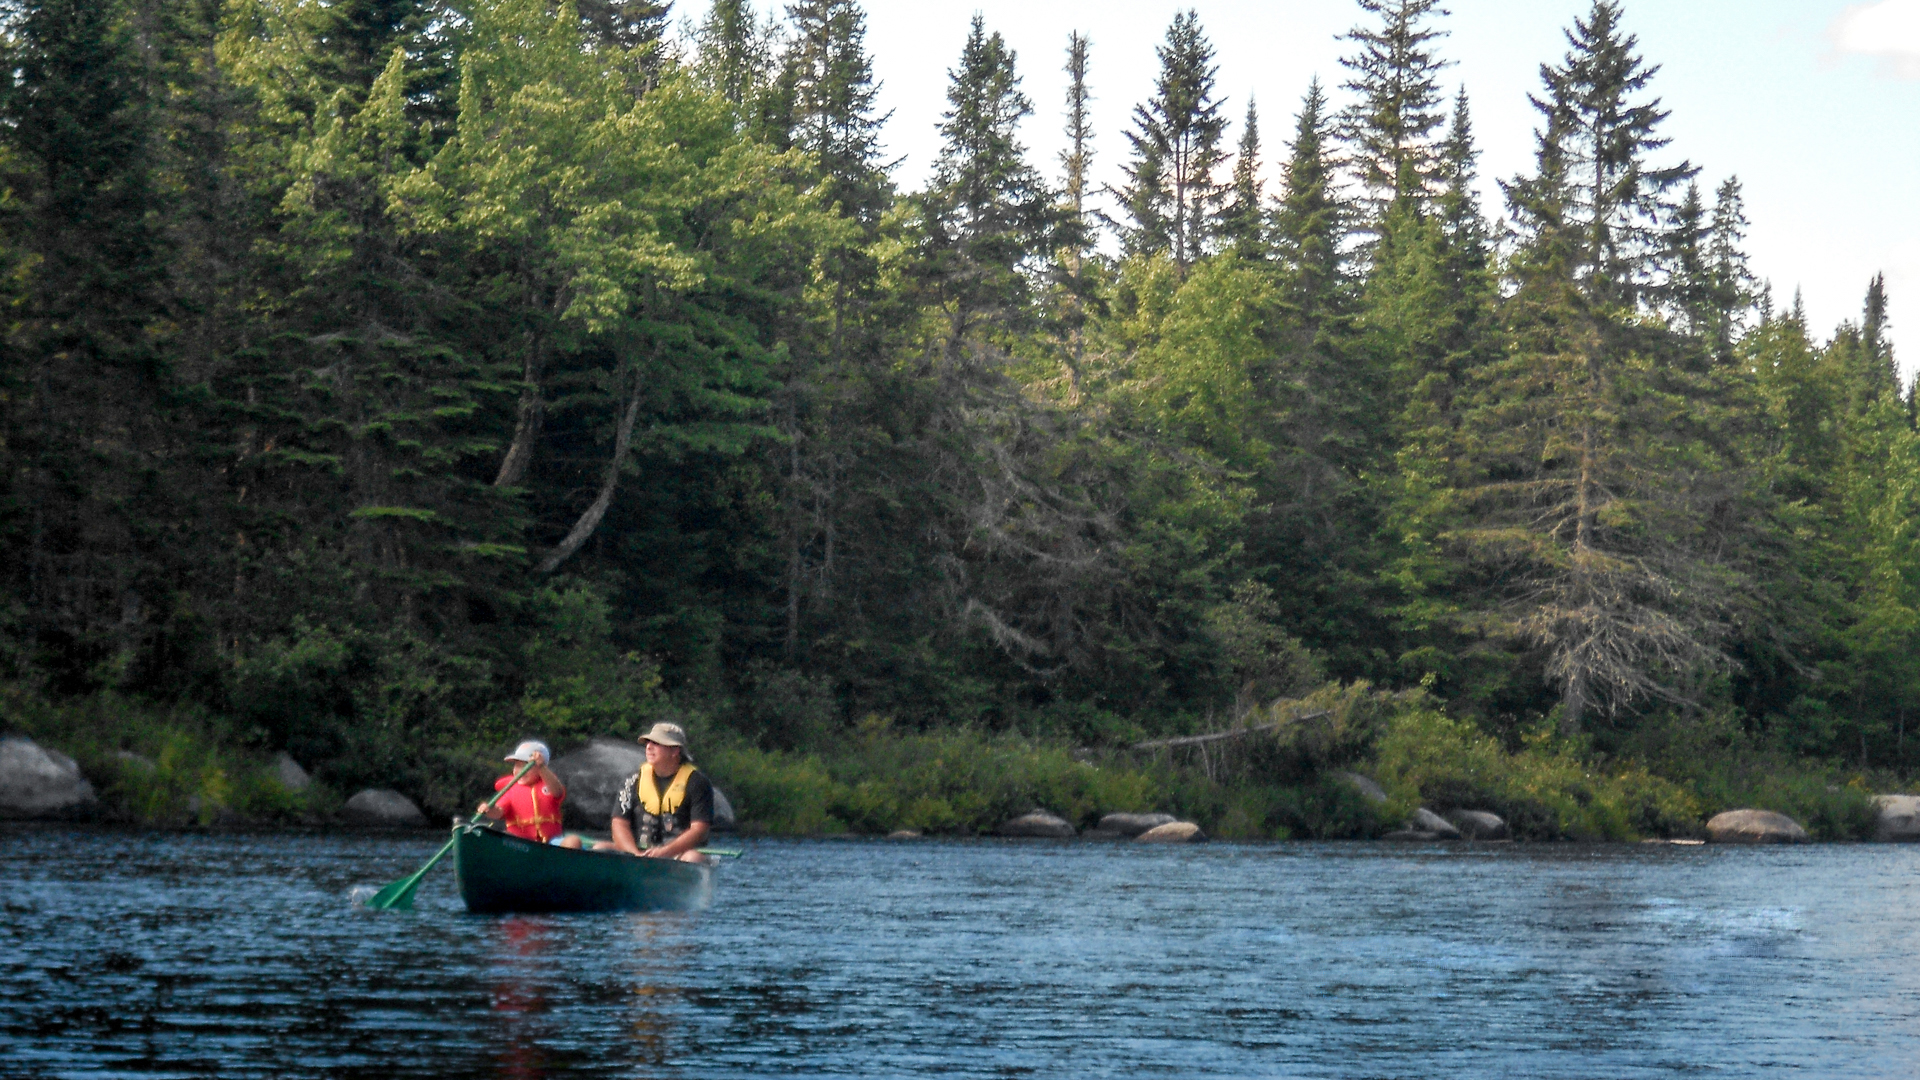 Canoeing the calm waters of Loon Bay